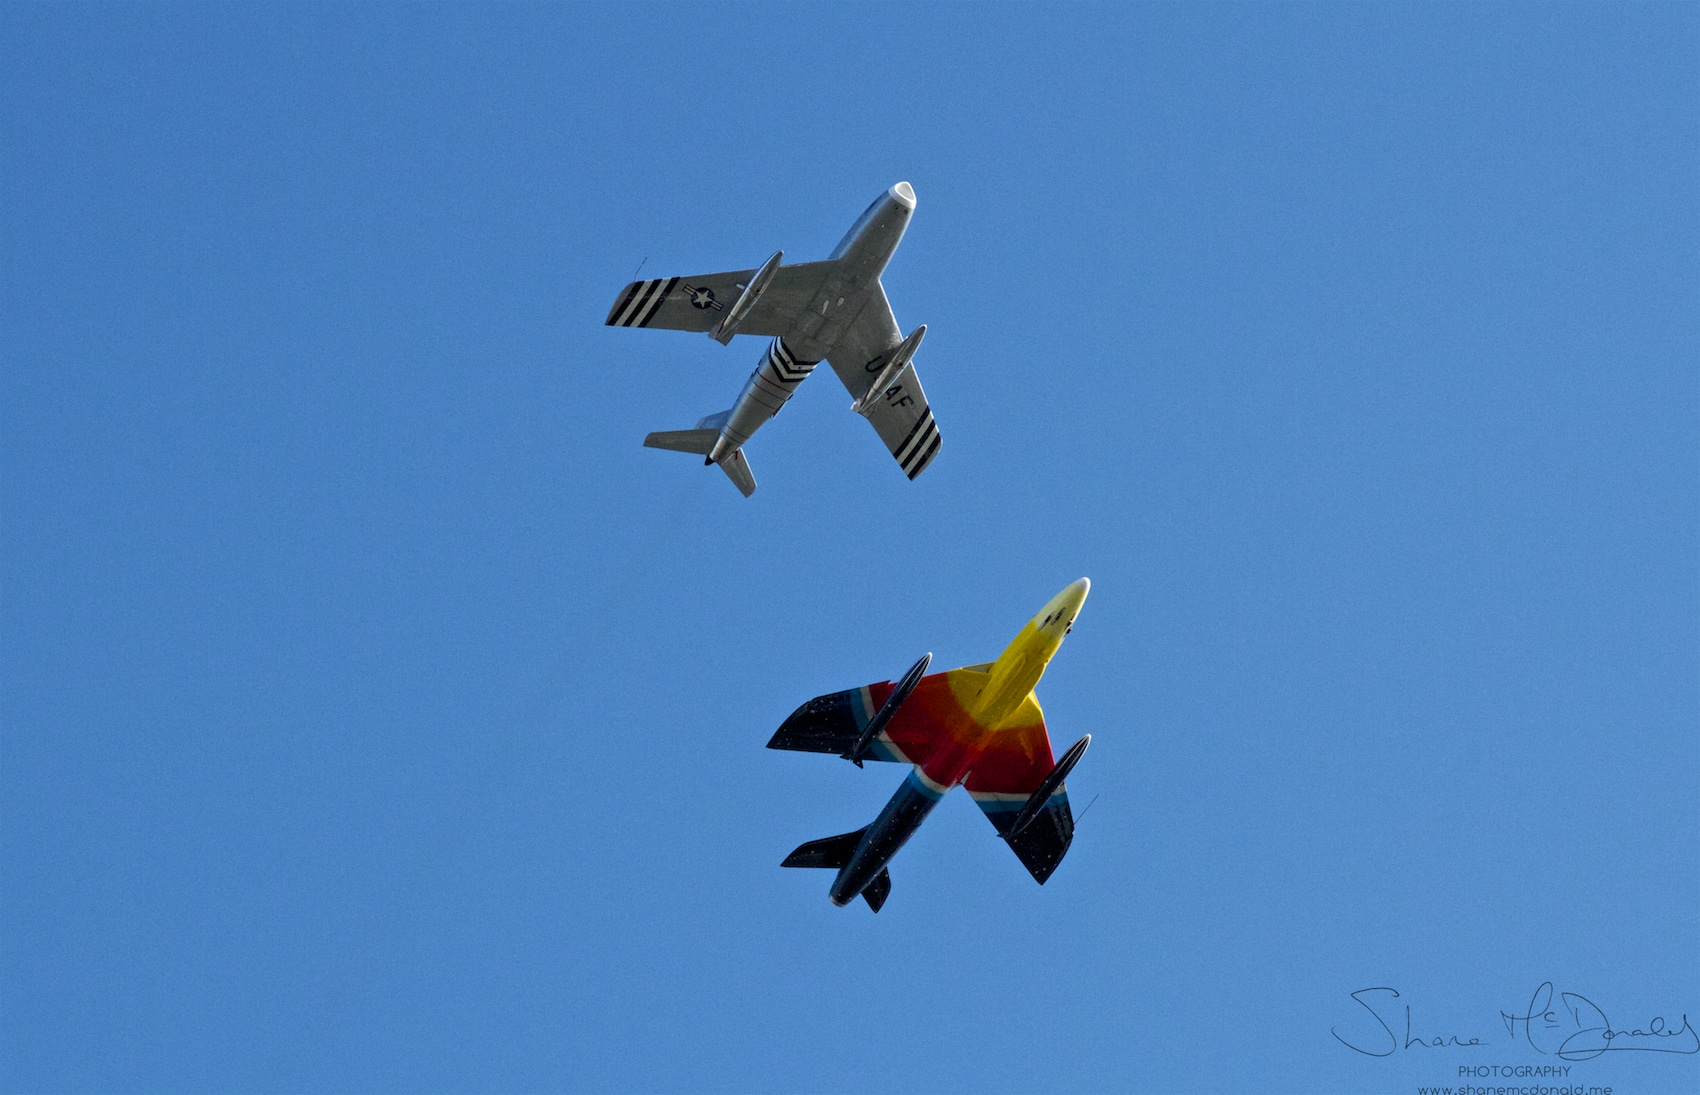 Flightfest Dublin 2013 – Photo Gallery of Flightfest Dublin 2013